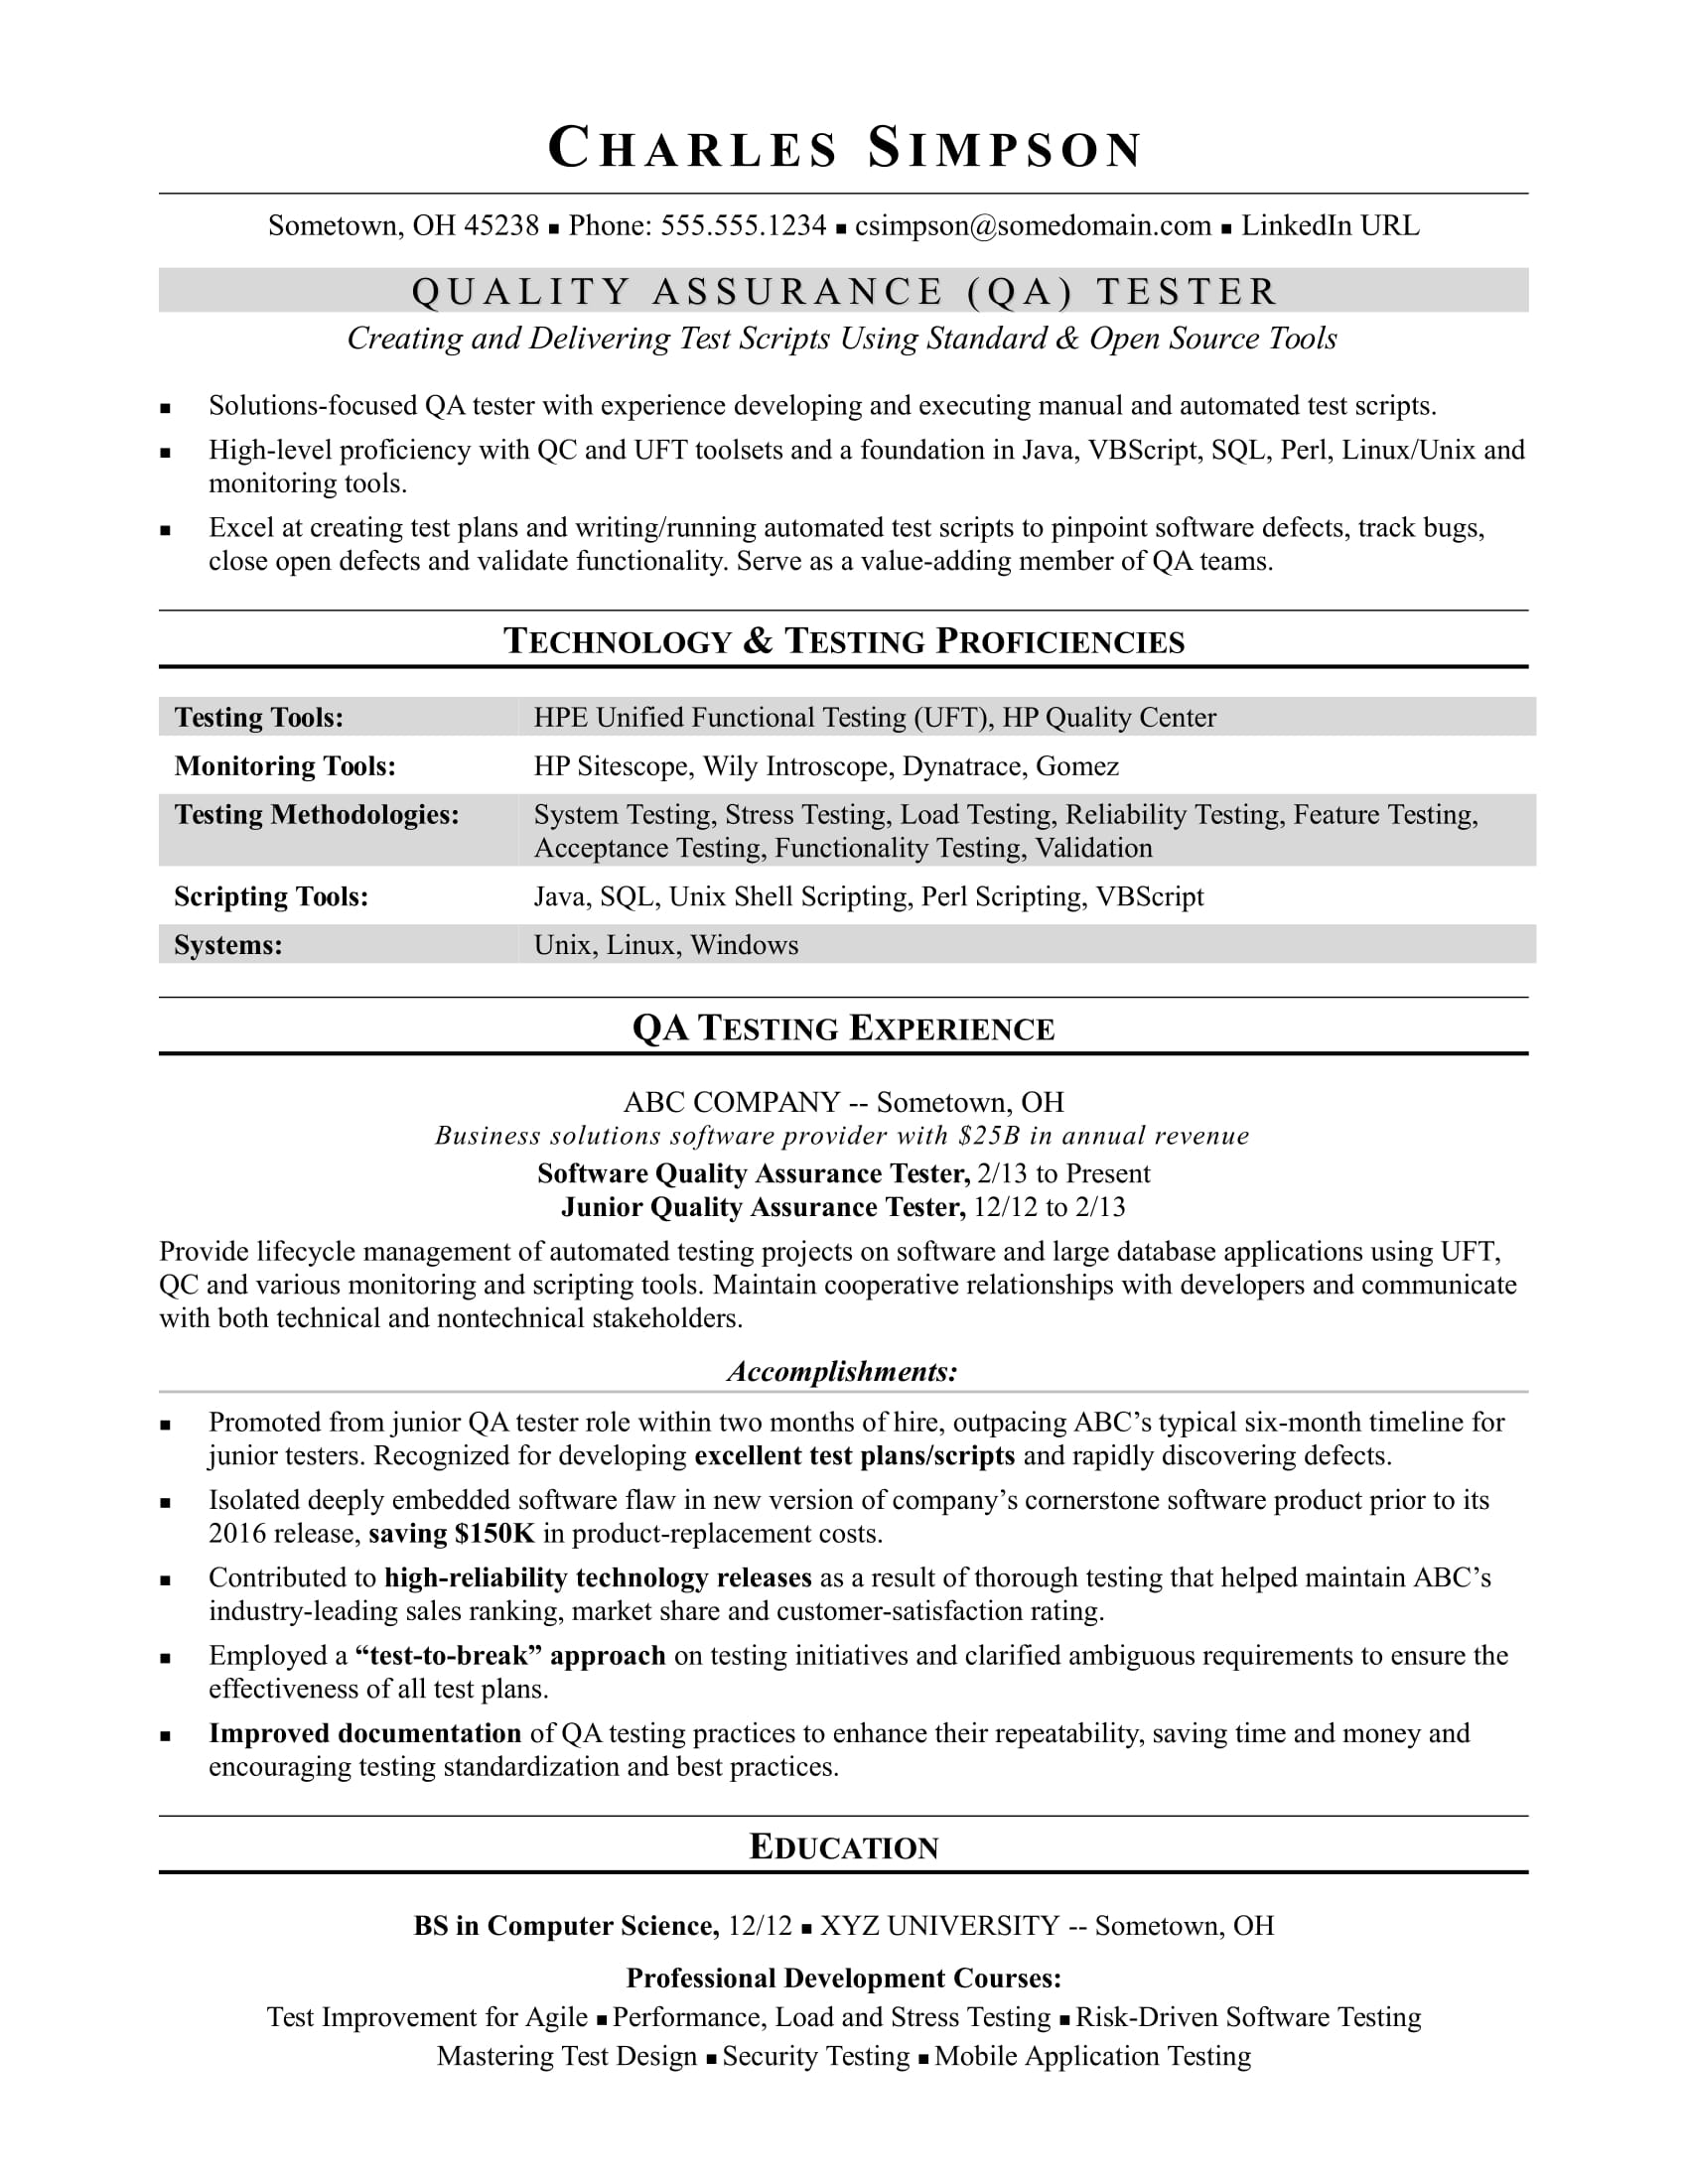 Sample Resume For A Midlevel QA Software Tester  Software Testing Resume